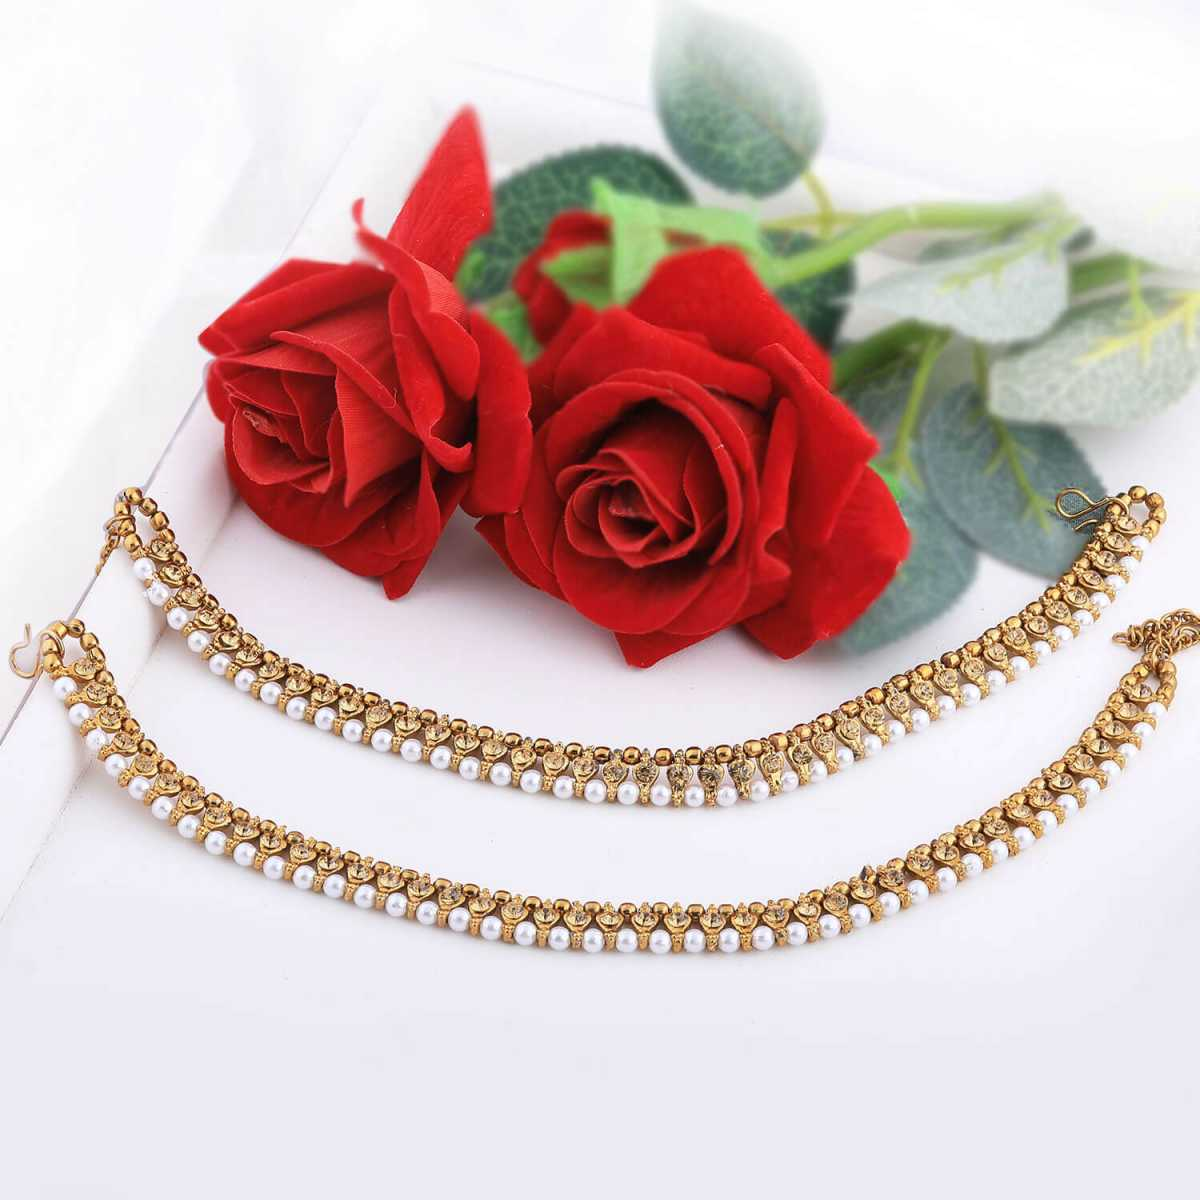 SILVER SHINE Gold Plated stylish Anklet For Women And Girl.